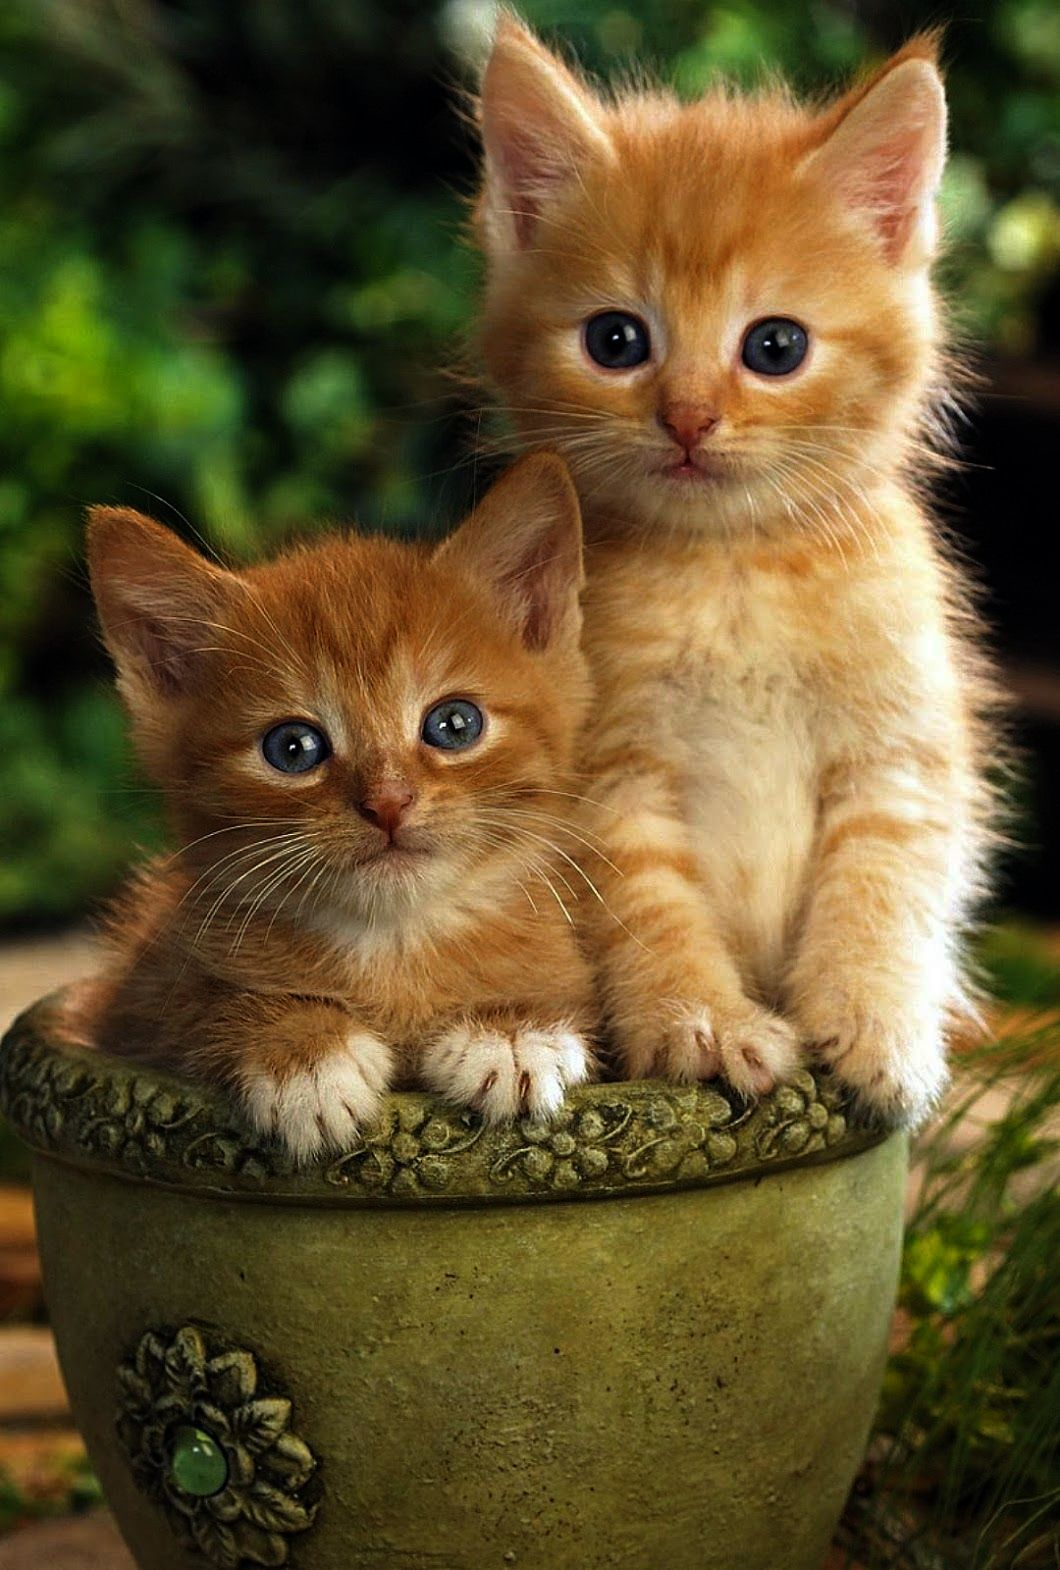 Cute Cats And Kittens Cute Kittens On Instagram Kittens Cutest